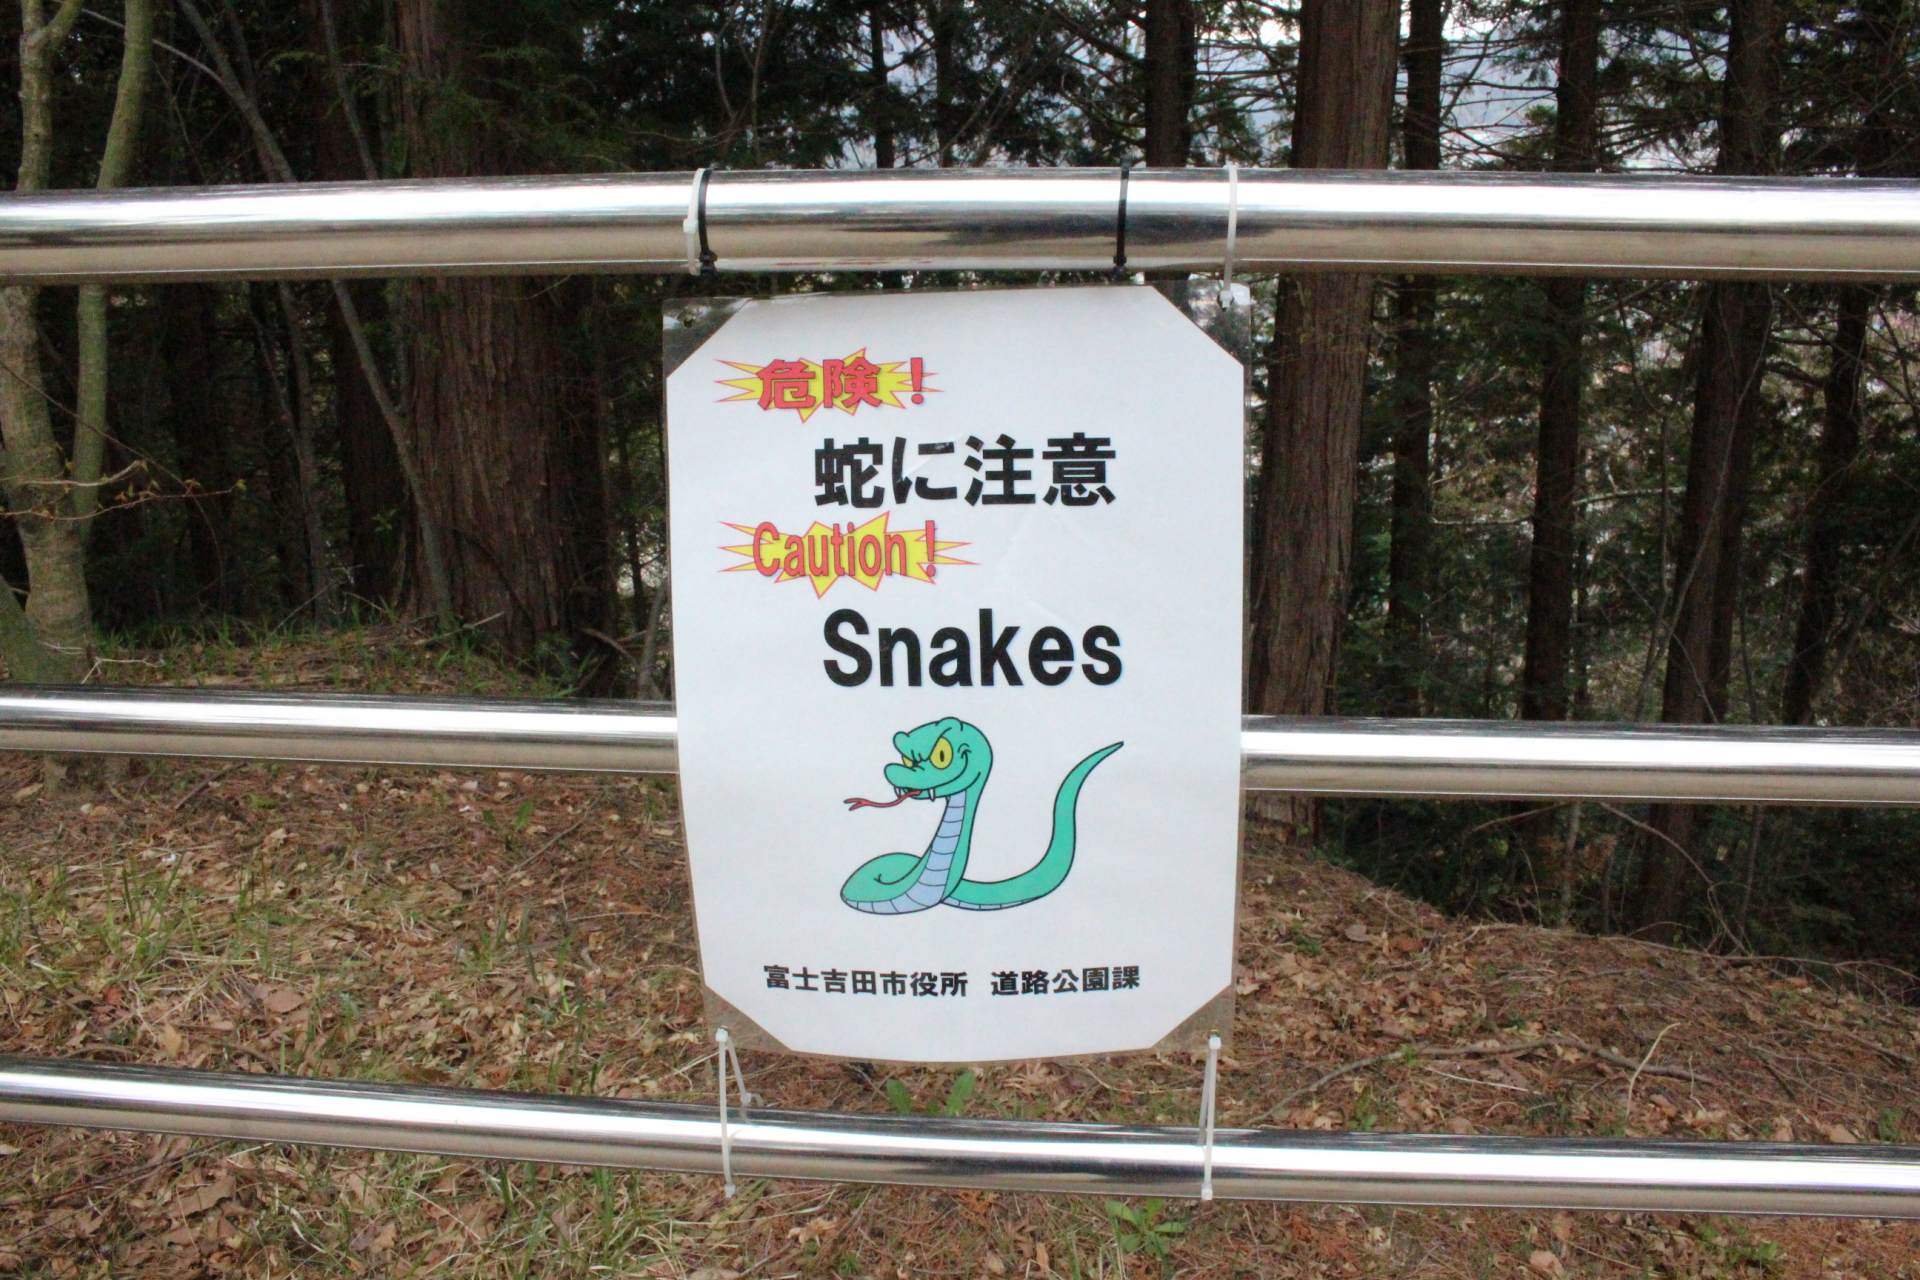 Beware of snakes!